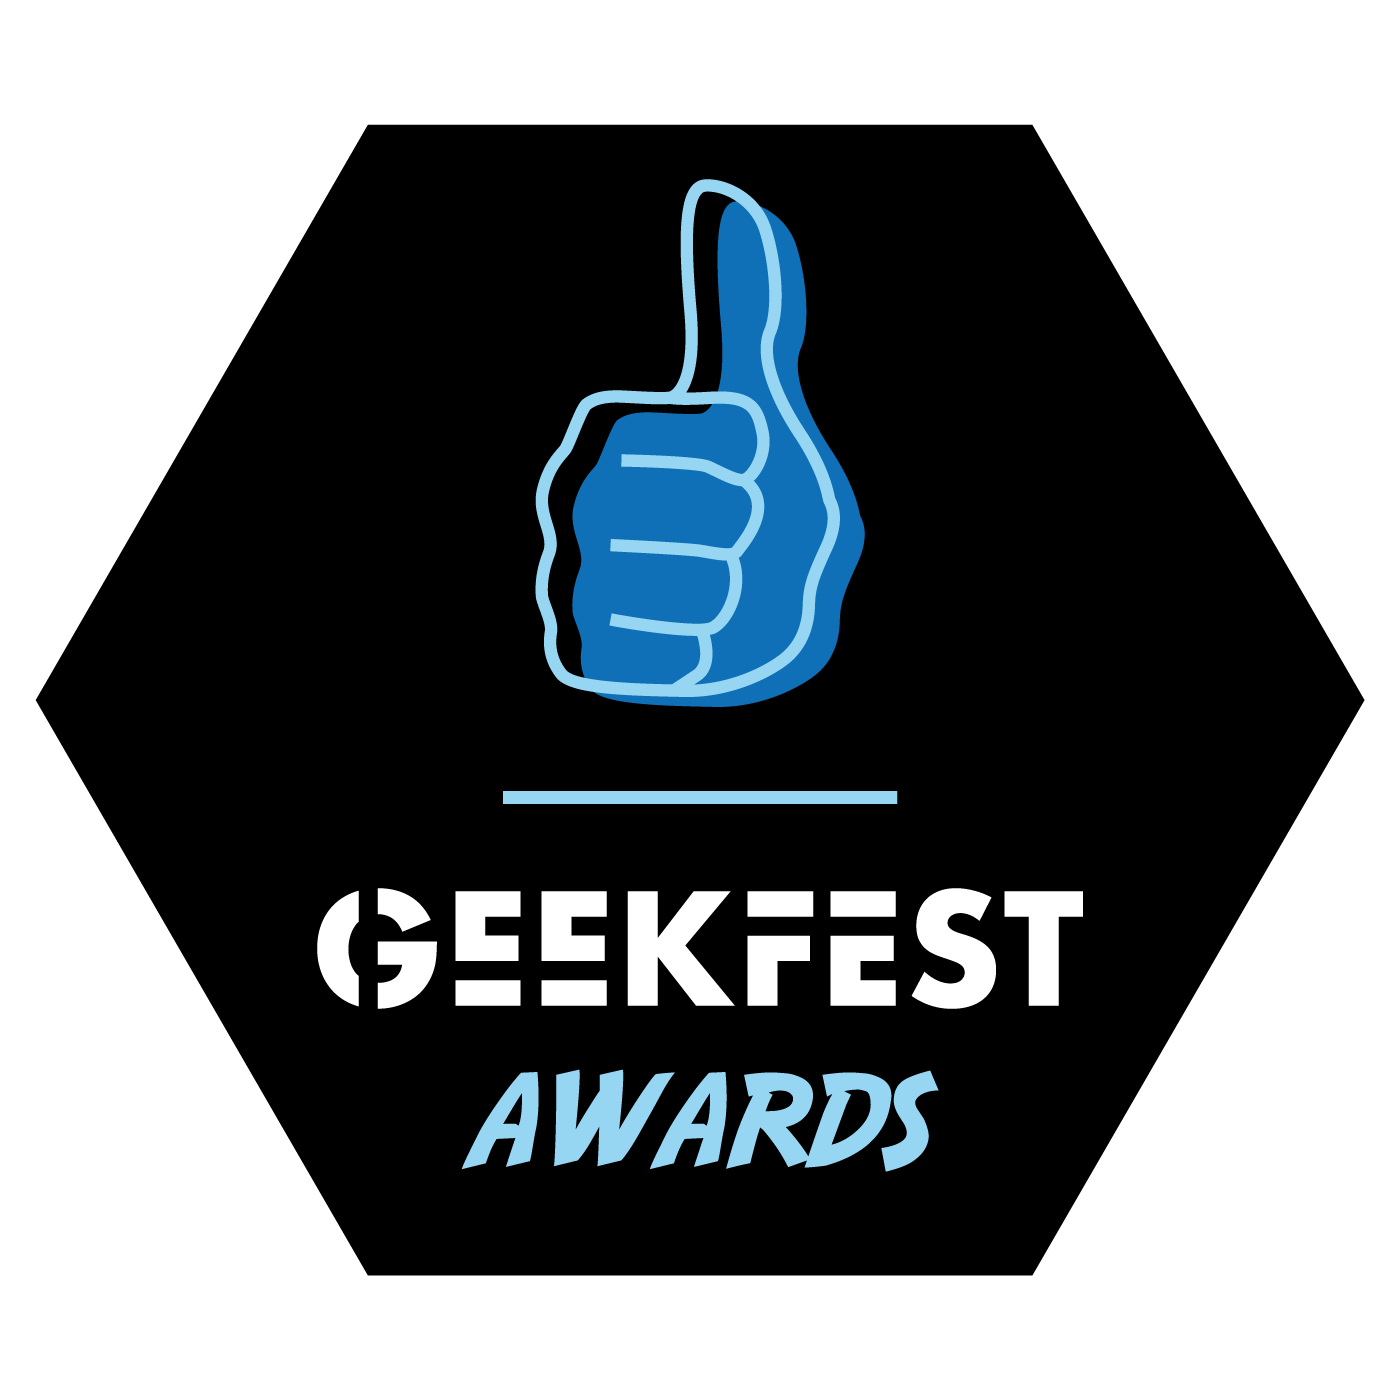 bordeaux-geekfest-label-awards